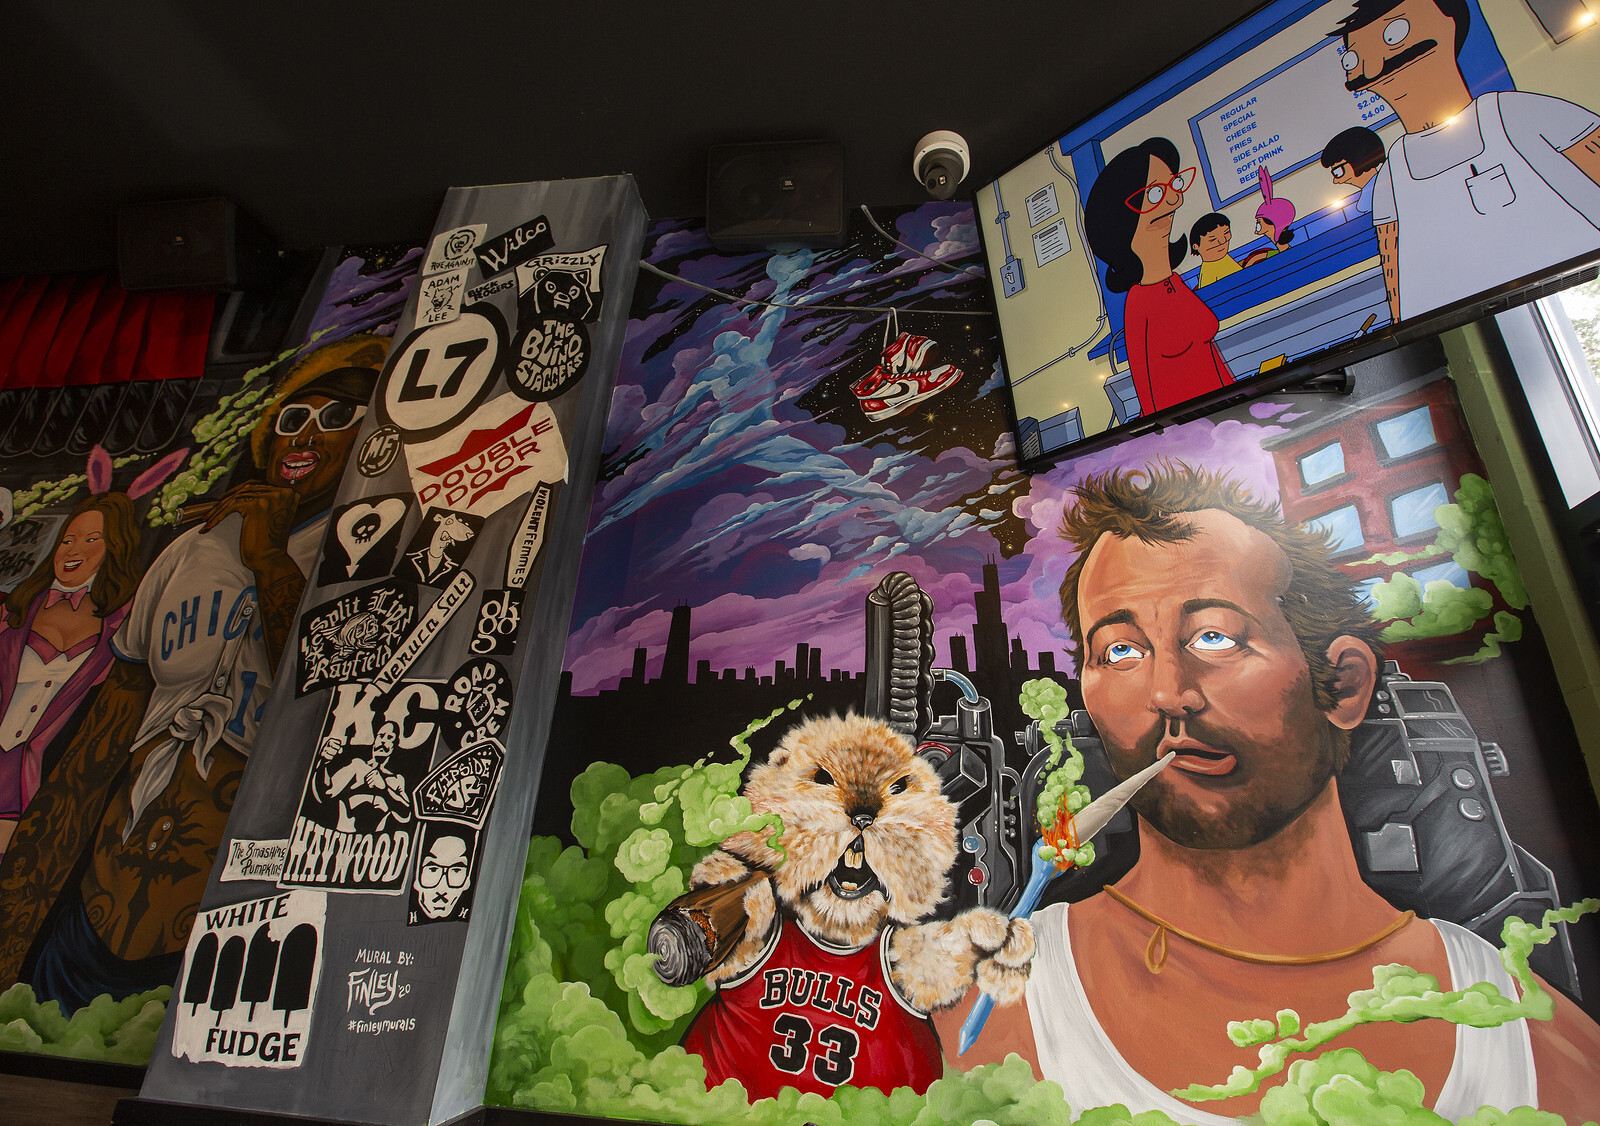 A huge wall mural of Chicago characters smoking weed.